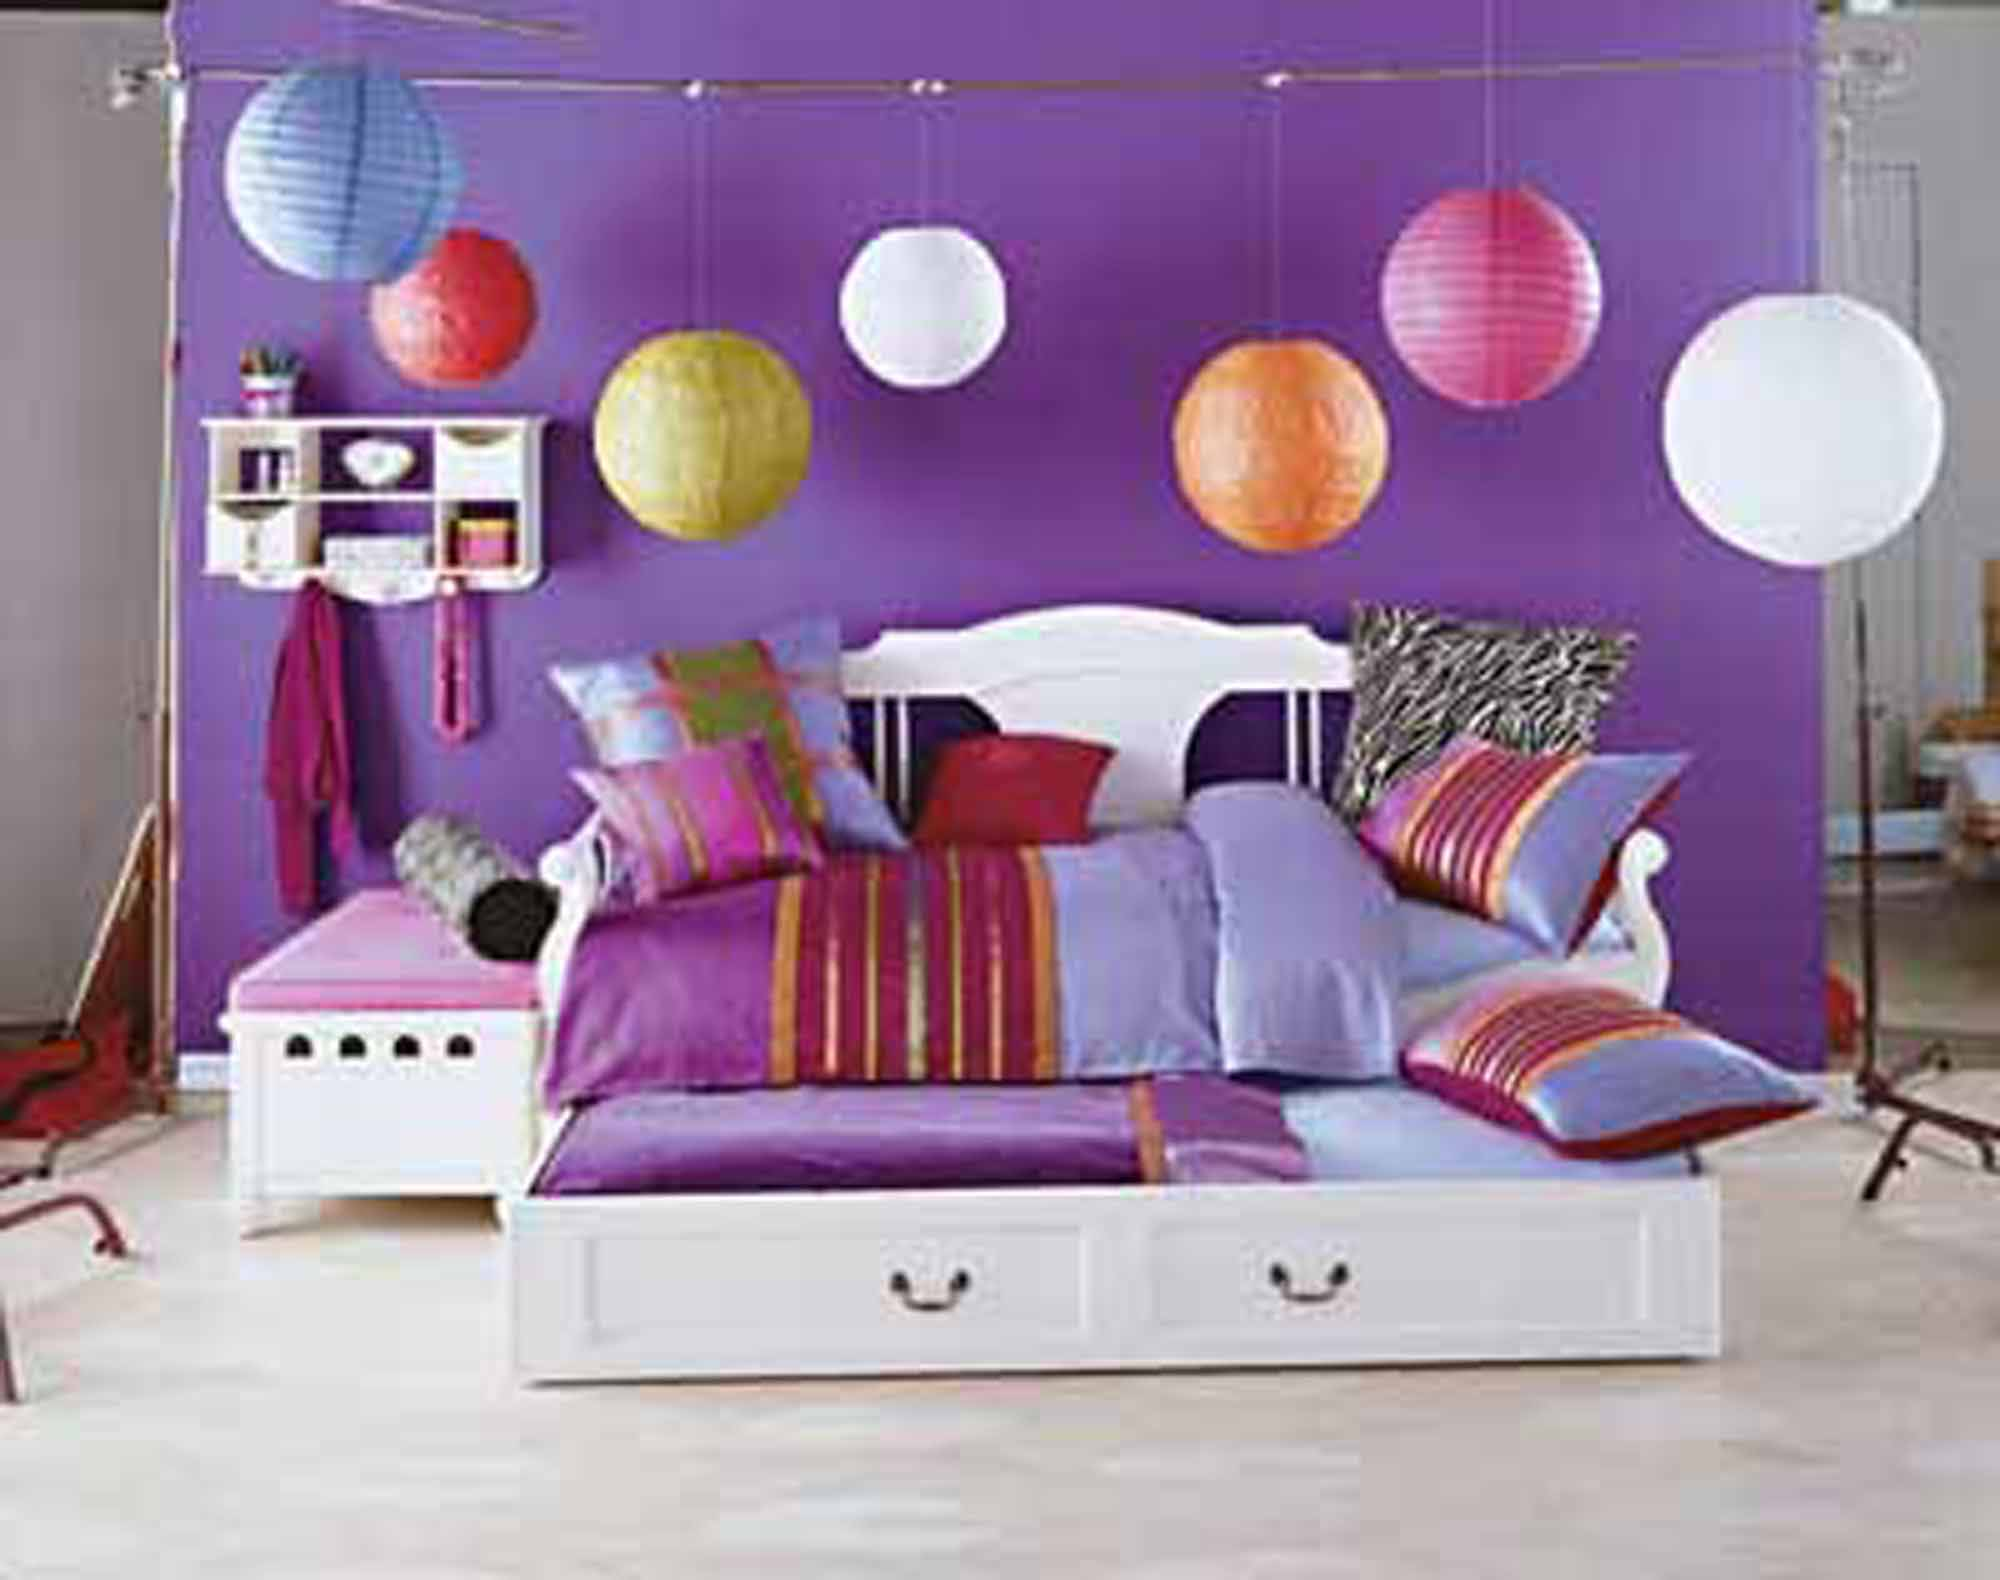 Girly Bedroom Design Ideas Kids Room Decor Cute Hanging Ball Lights Idead Wendy Peterson